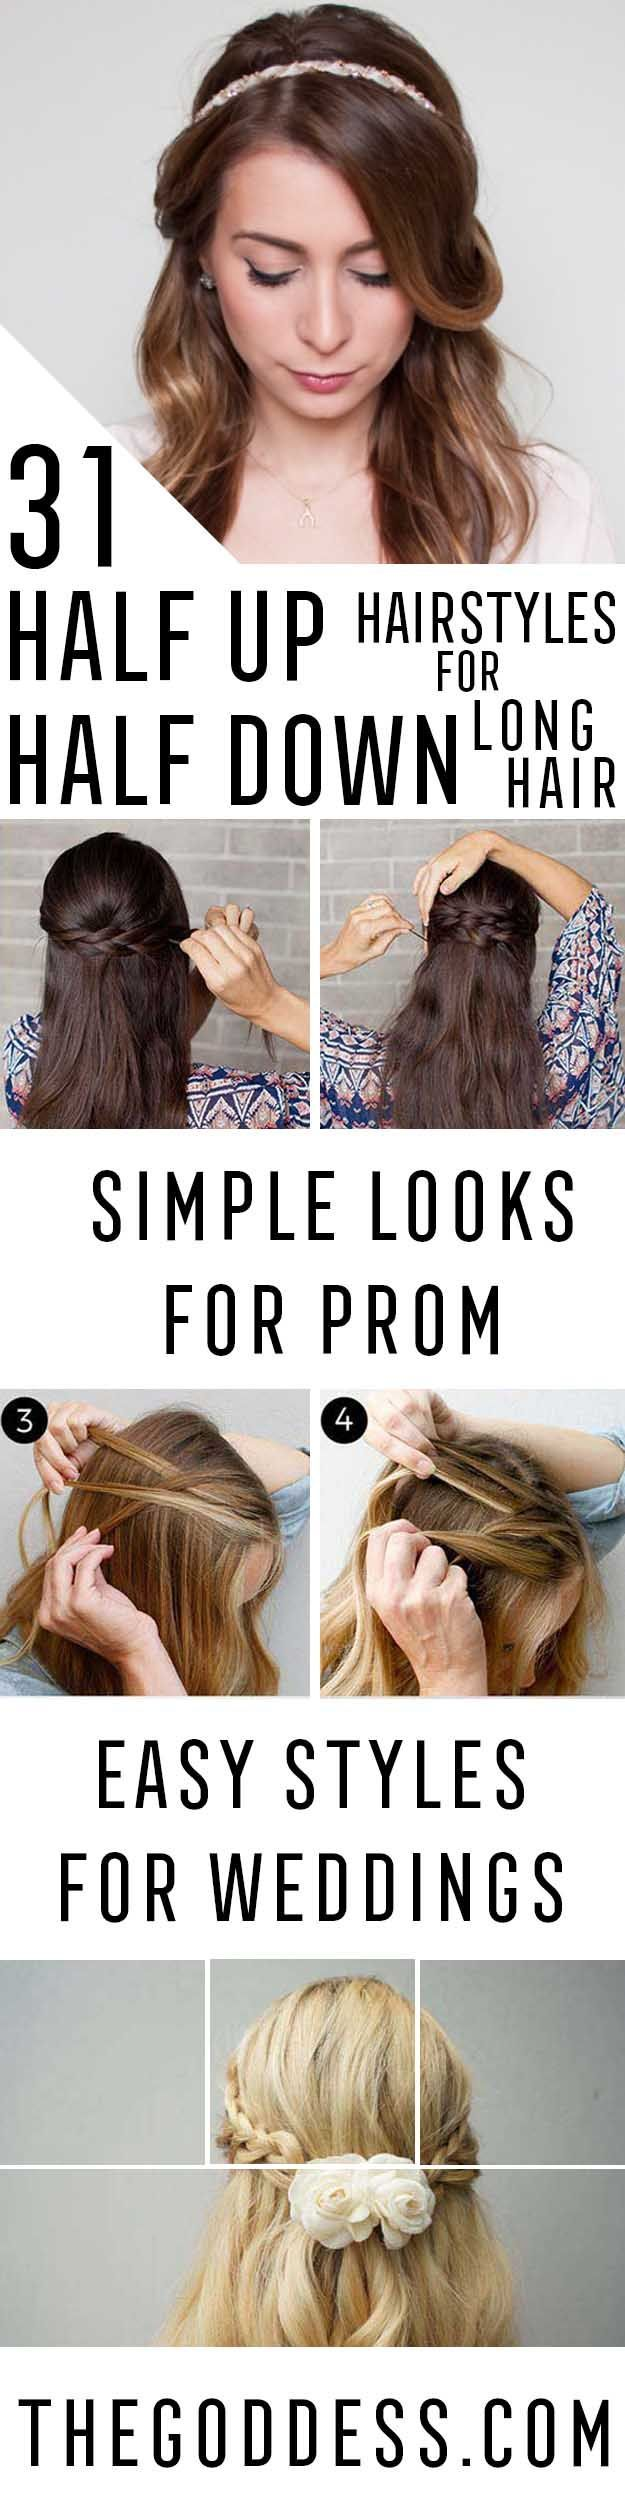 31 Amazing Half up-Half down Hairstyles For Long Hair | Half ...